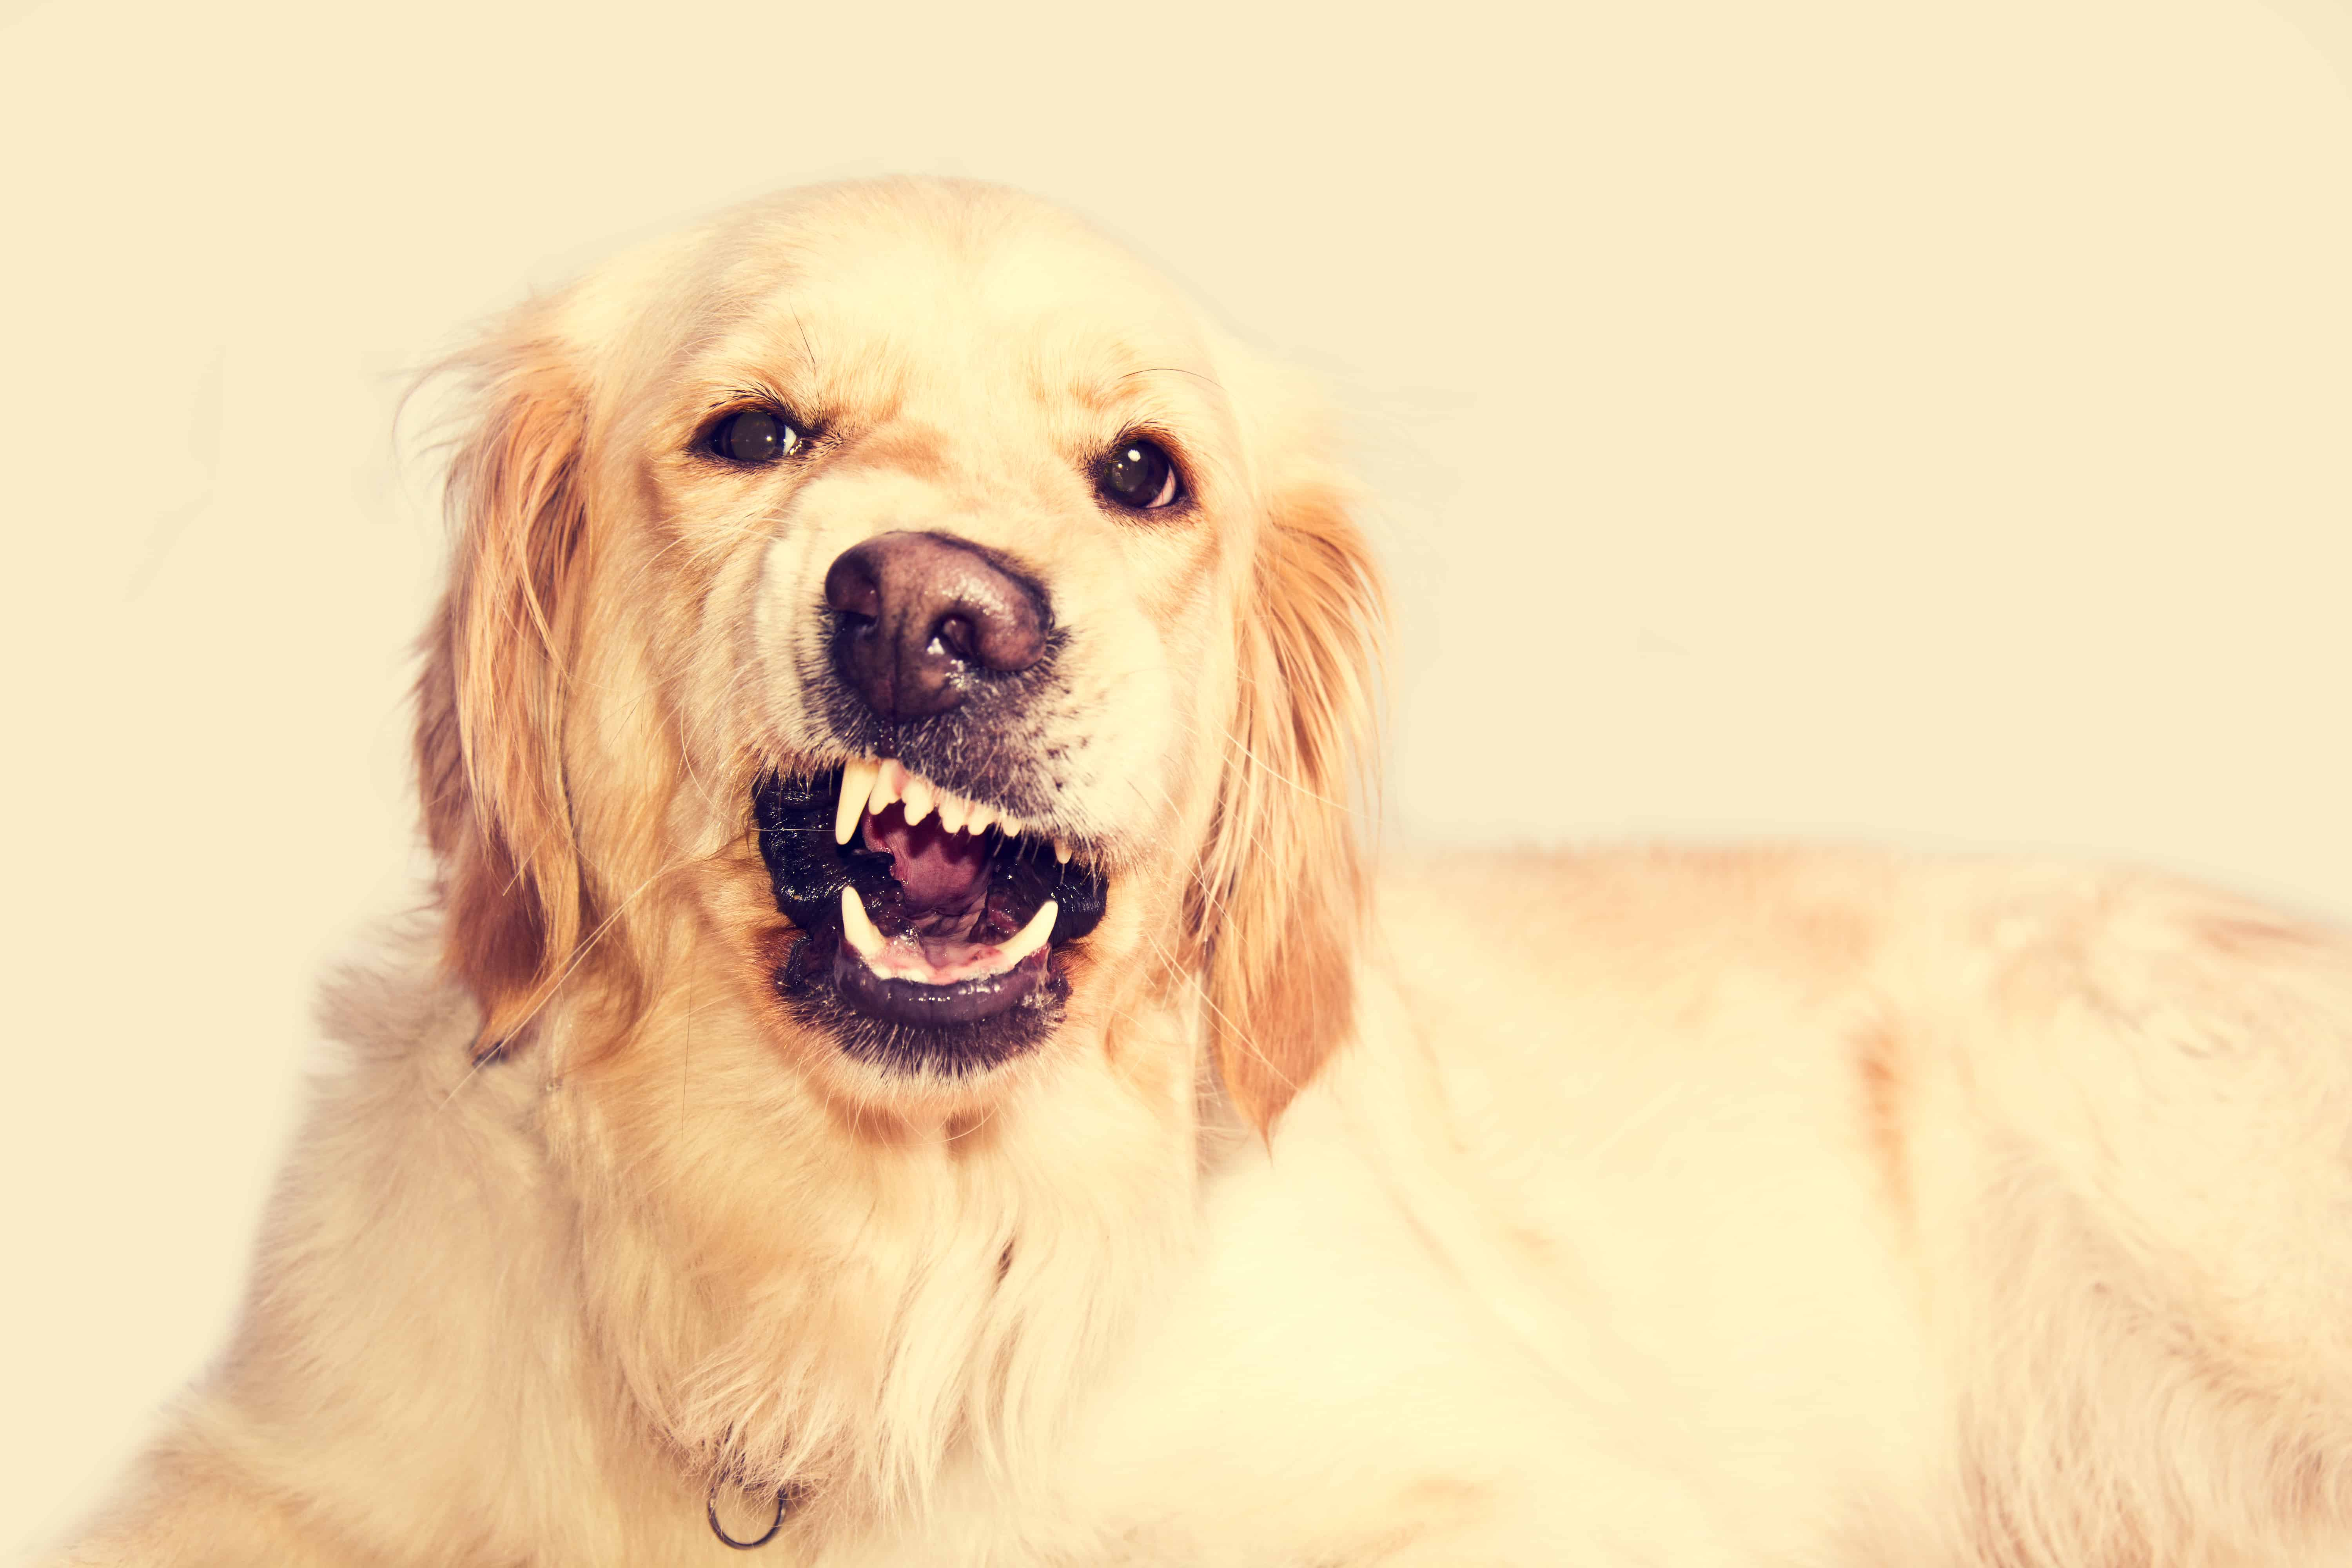 Angry golden retriever dog